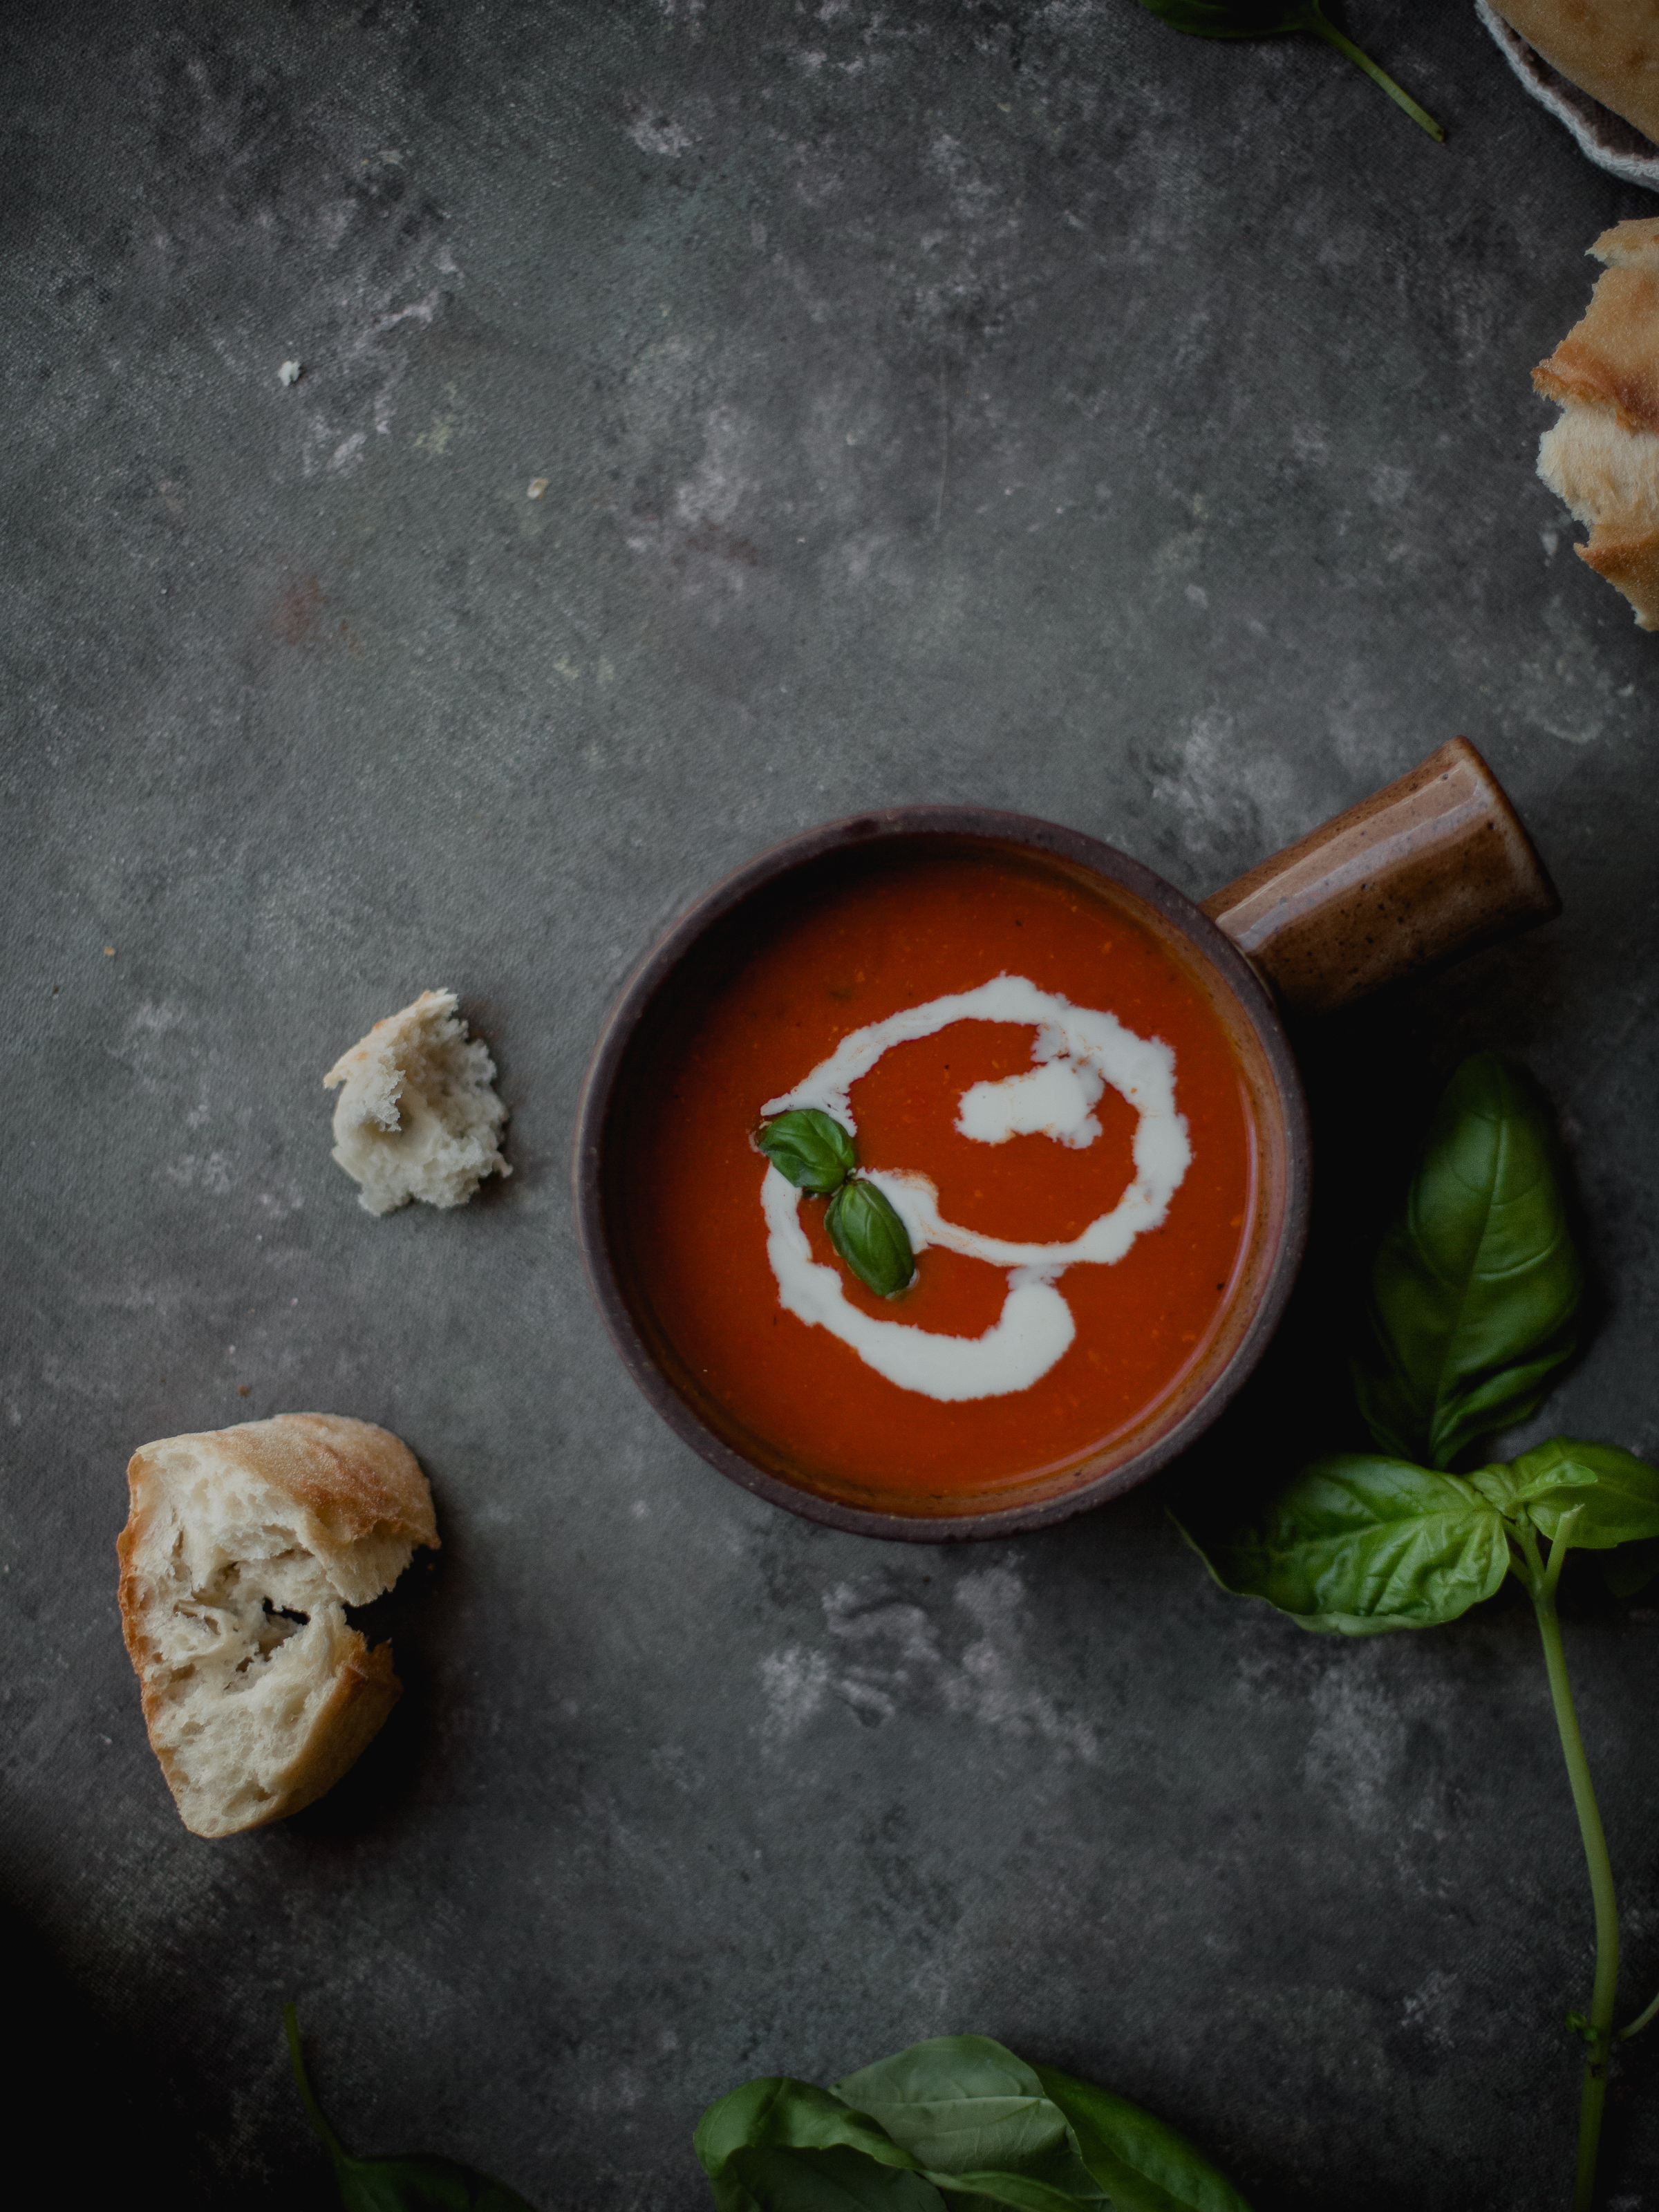 Umami flavored creamy tomato soup | from scratch, mostly blog